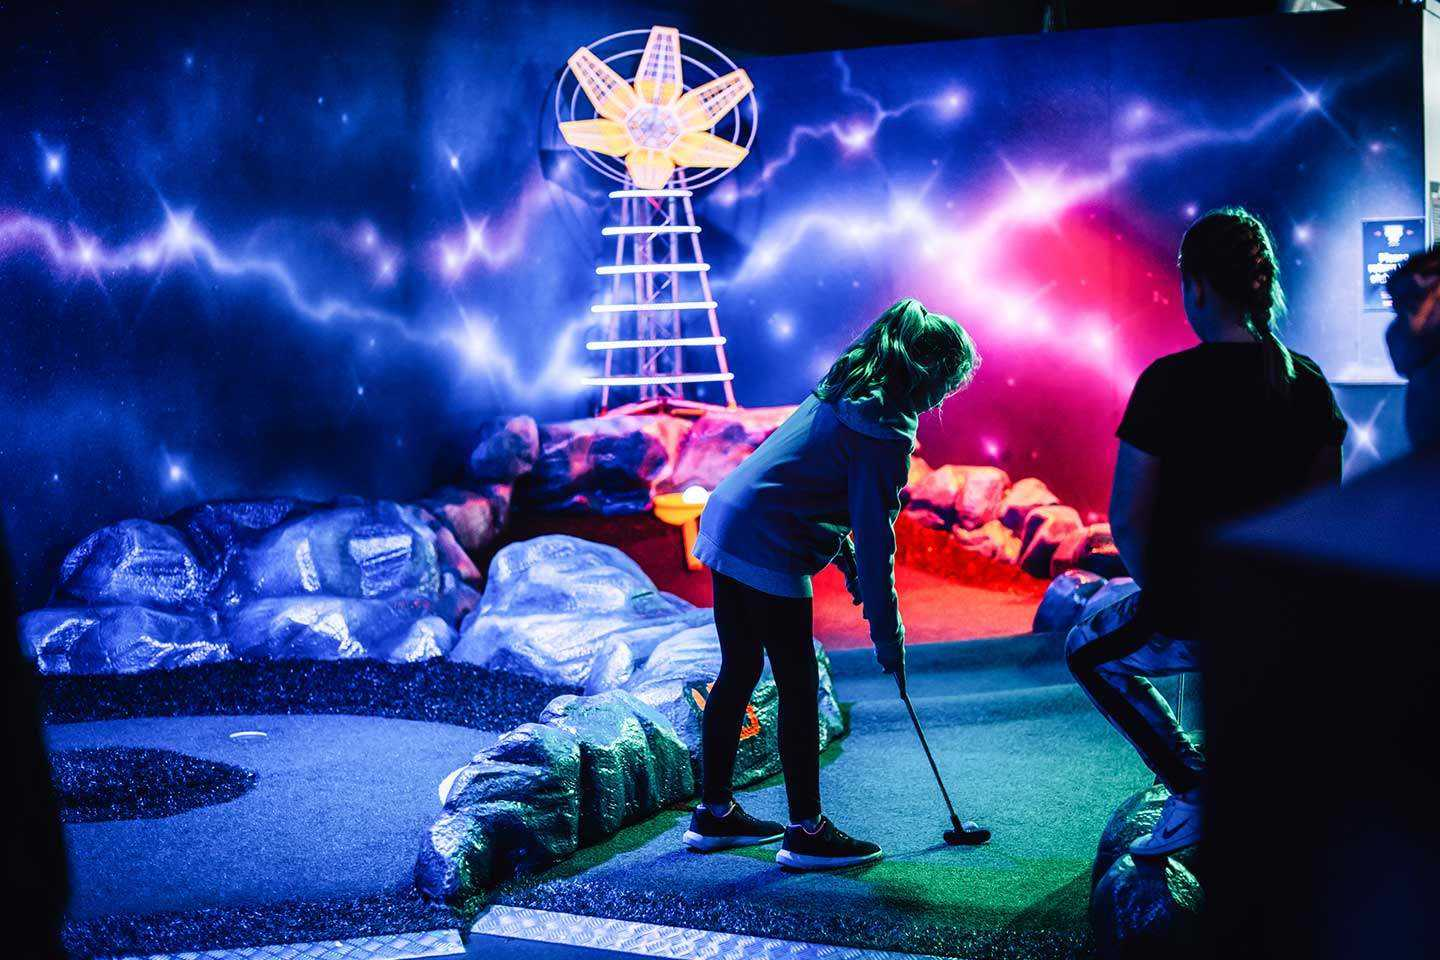 2 Girls playing Mini Golf at Airtastic Space Themed Course